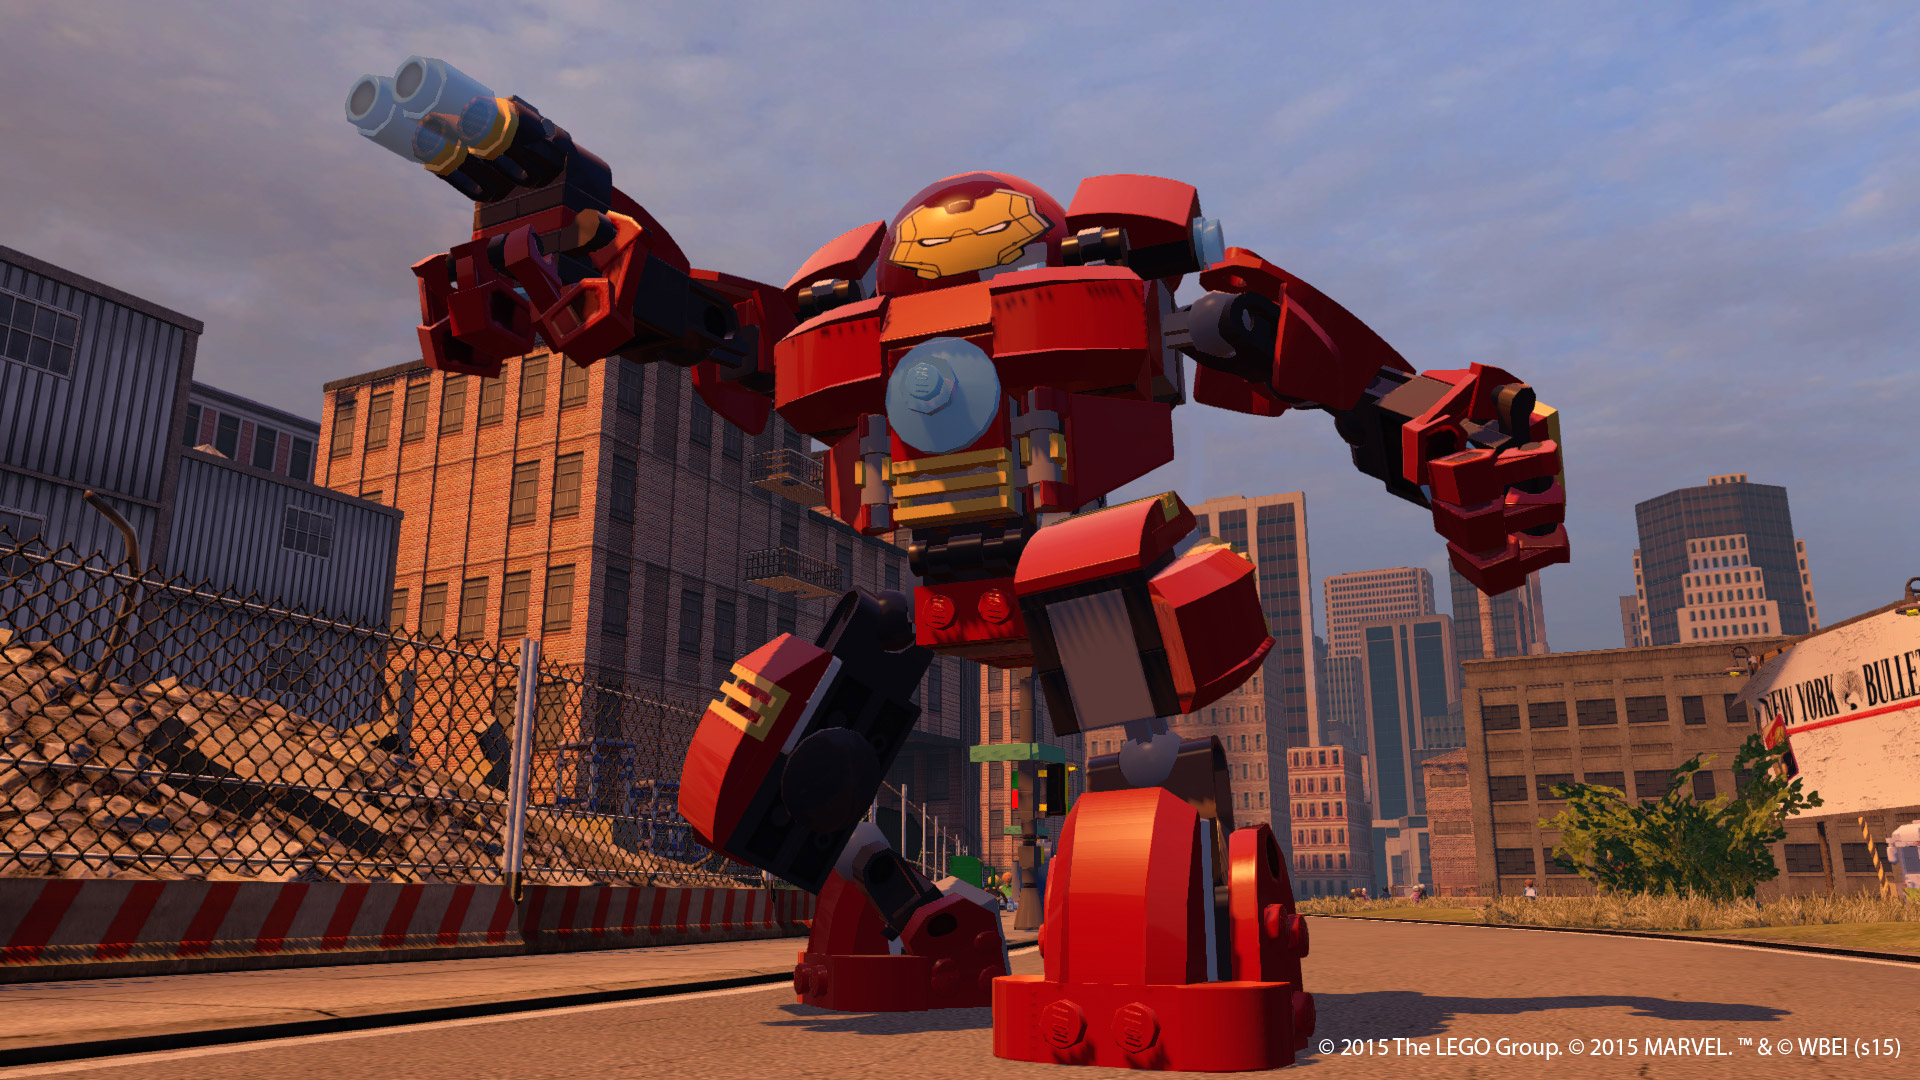 Lego Marvel's Avengers adds 100-plus characters, even more Stan Lee